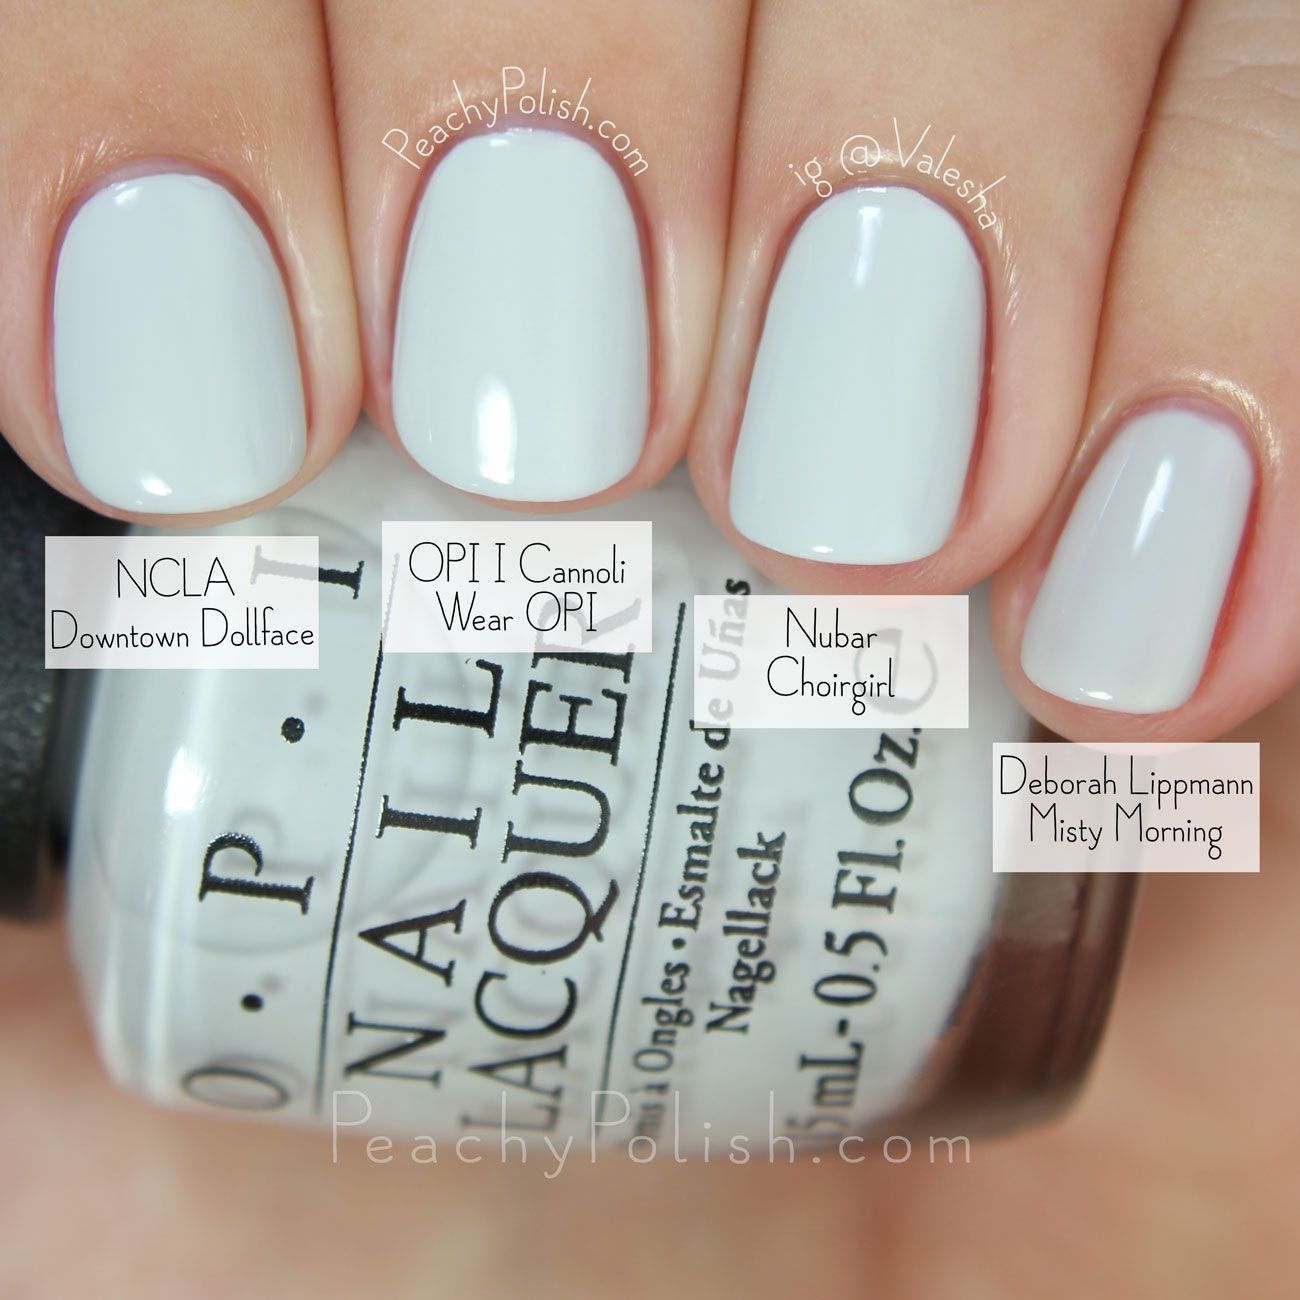 OPI I Cannoli Wear OPI Comparison | Fall 2015 Venice Collection ...